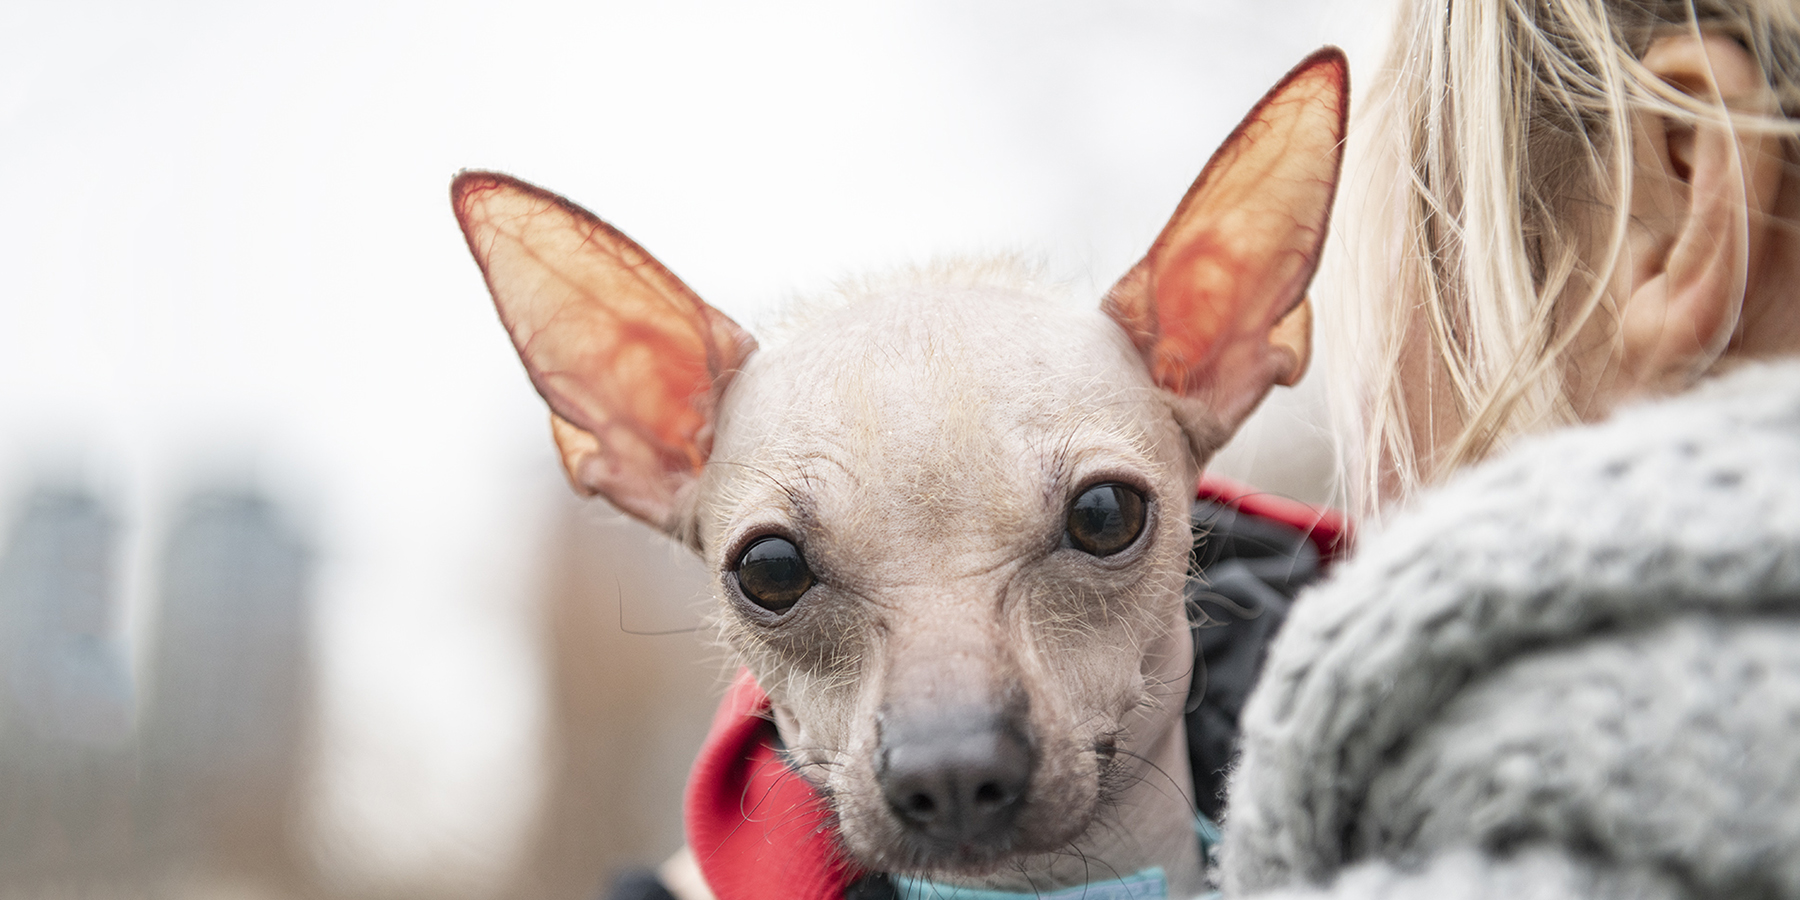 Charlie my friend's rescue Hairless Chihuahua